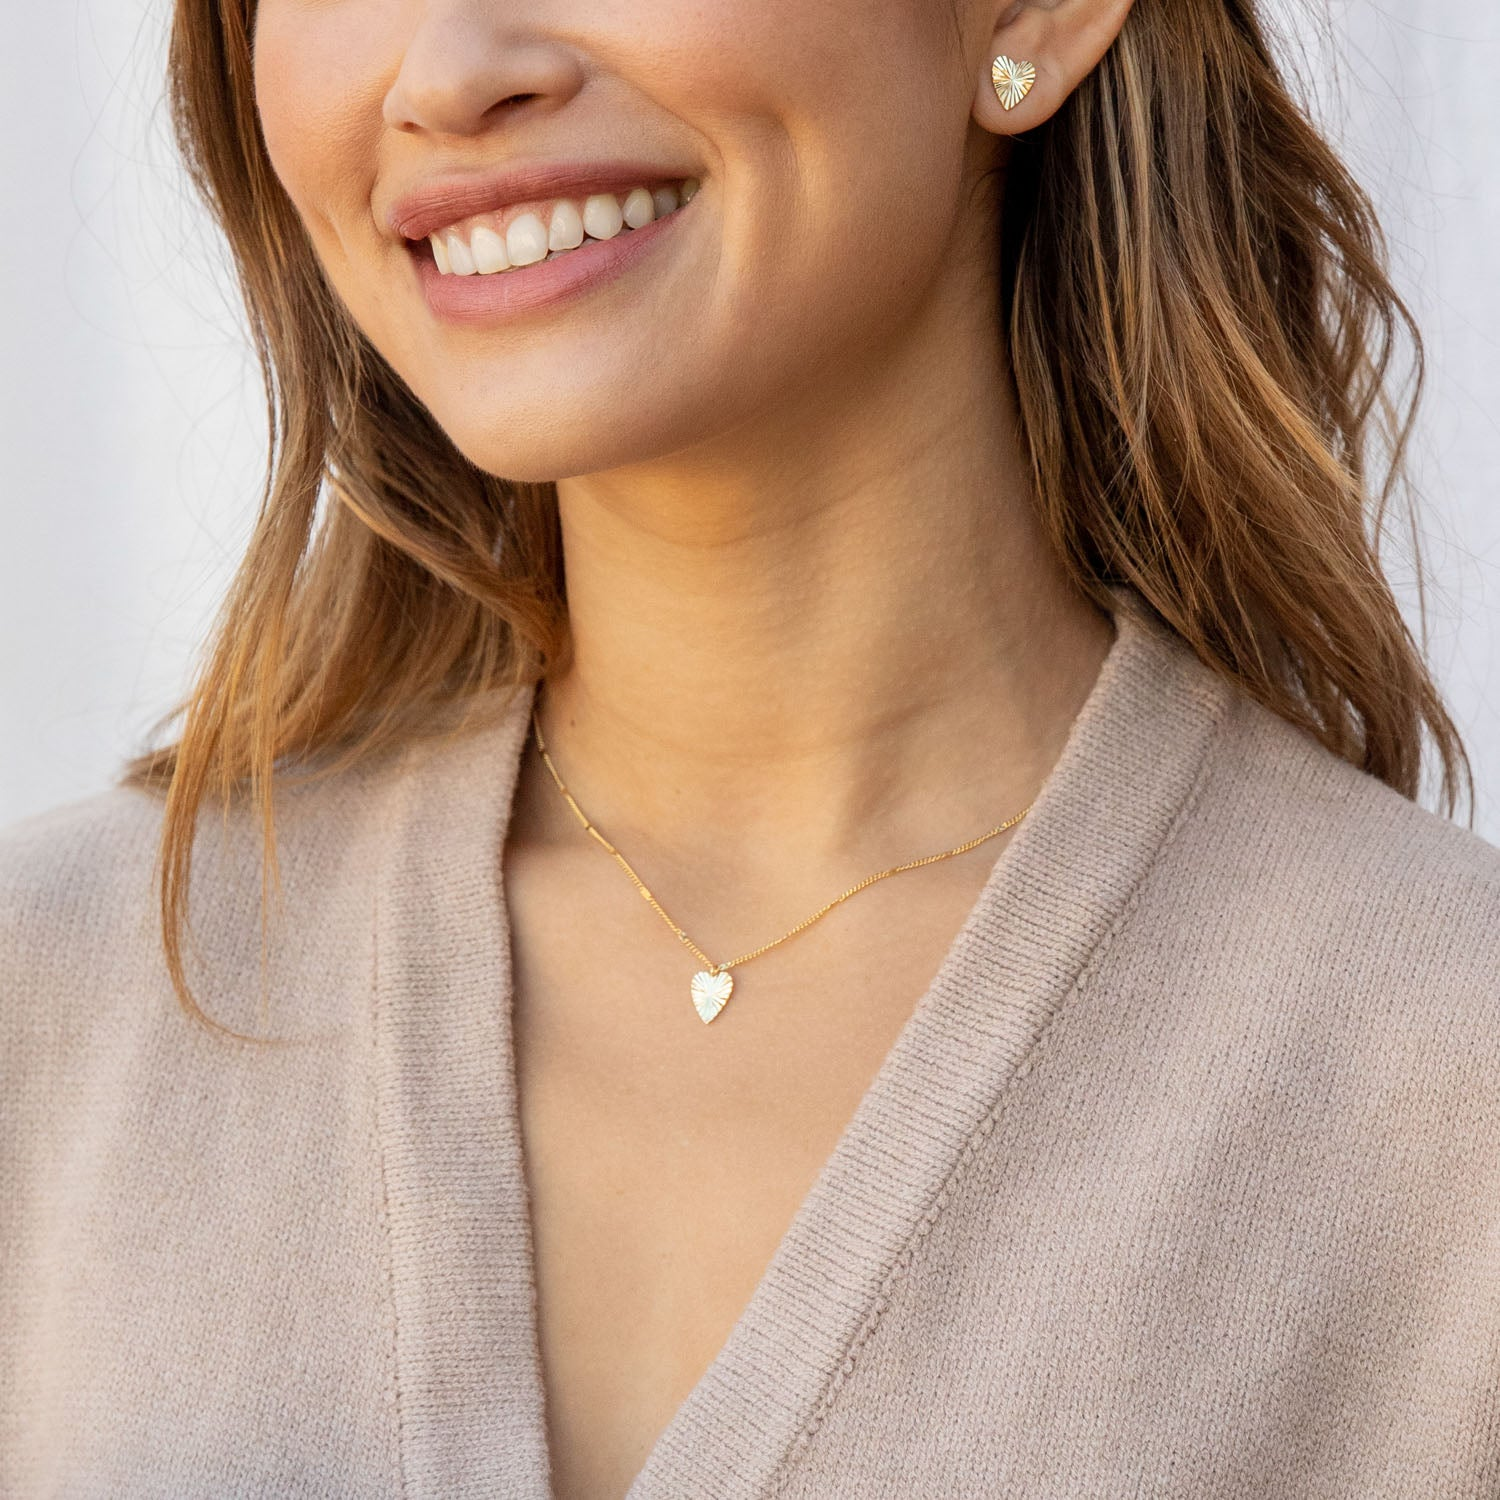 Image result for gorjana beau necklace - Pretty Necklaces Under $100 - Everyday From A